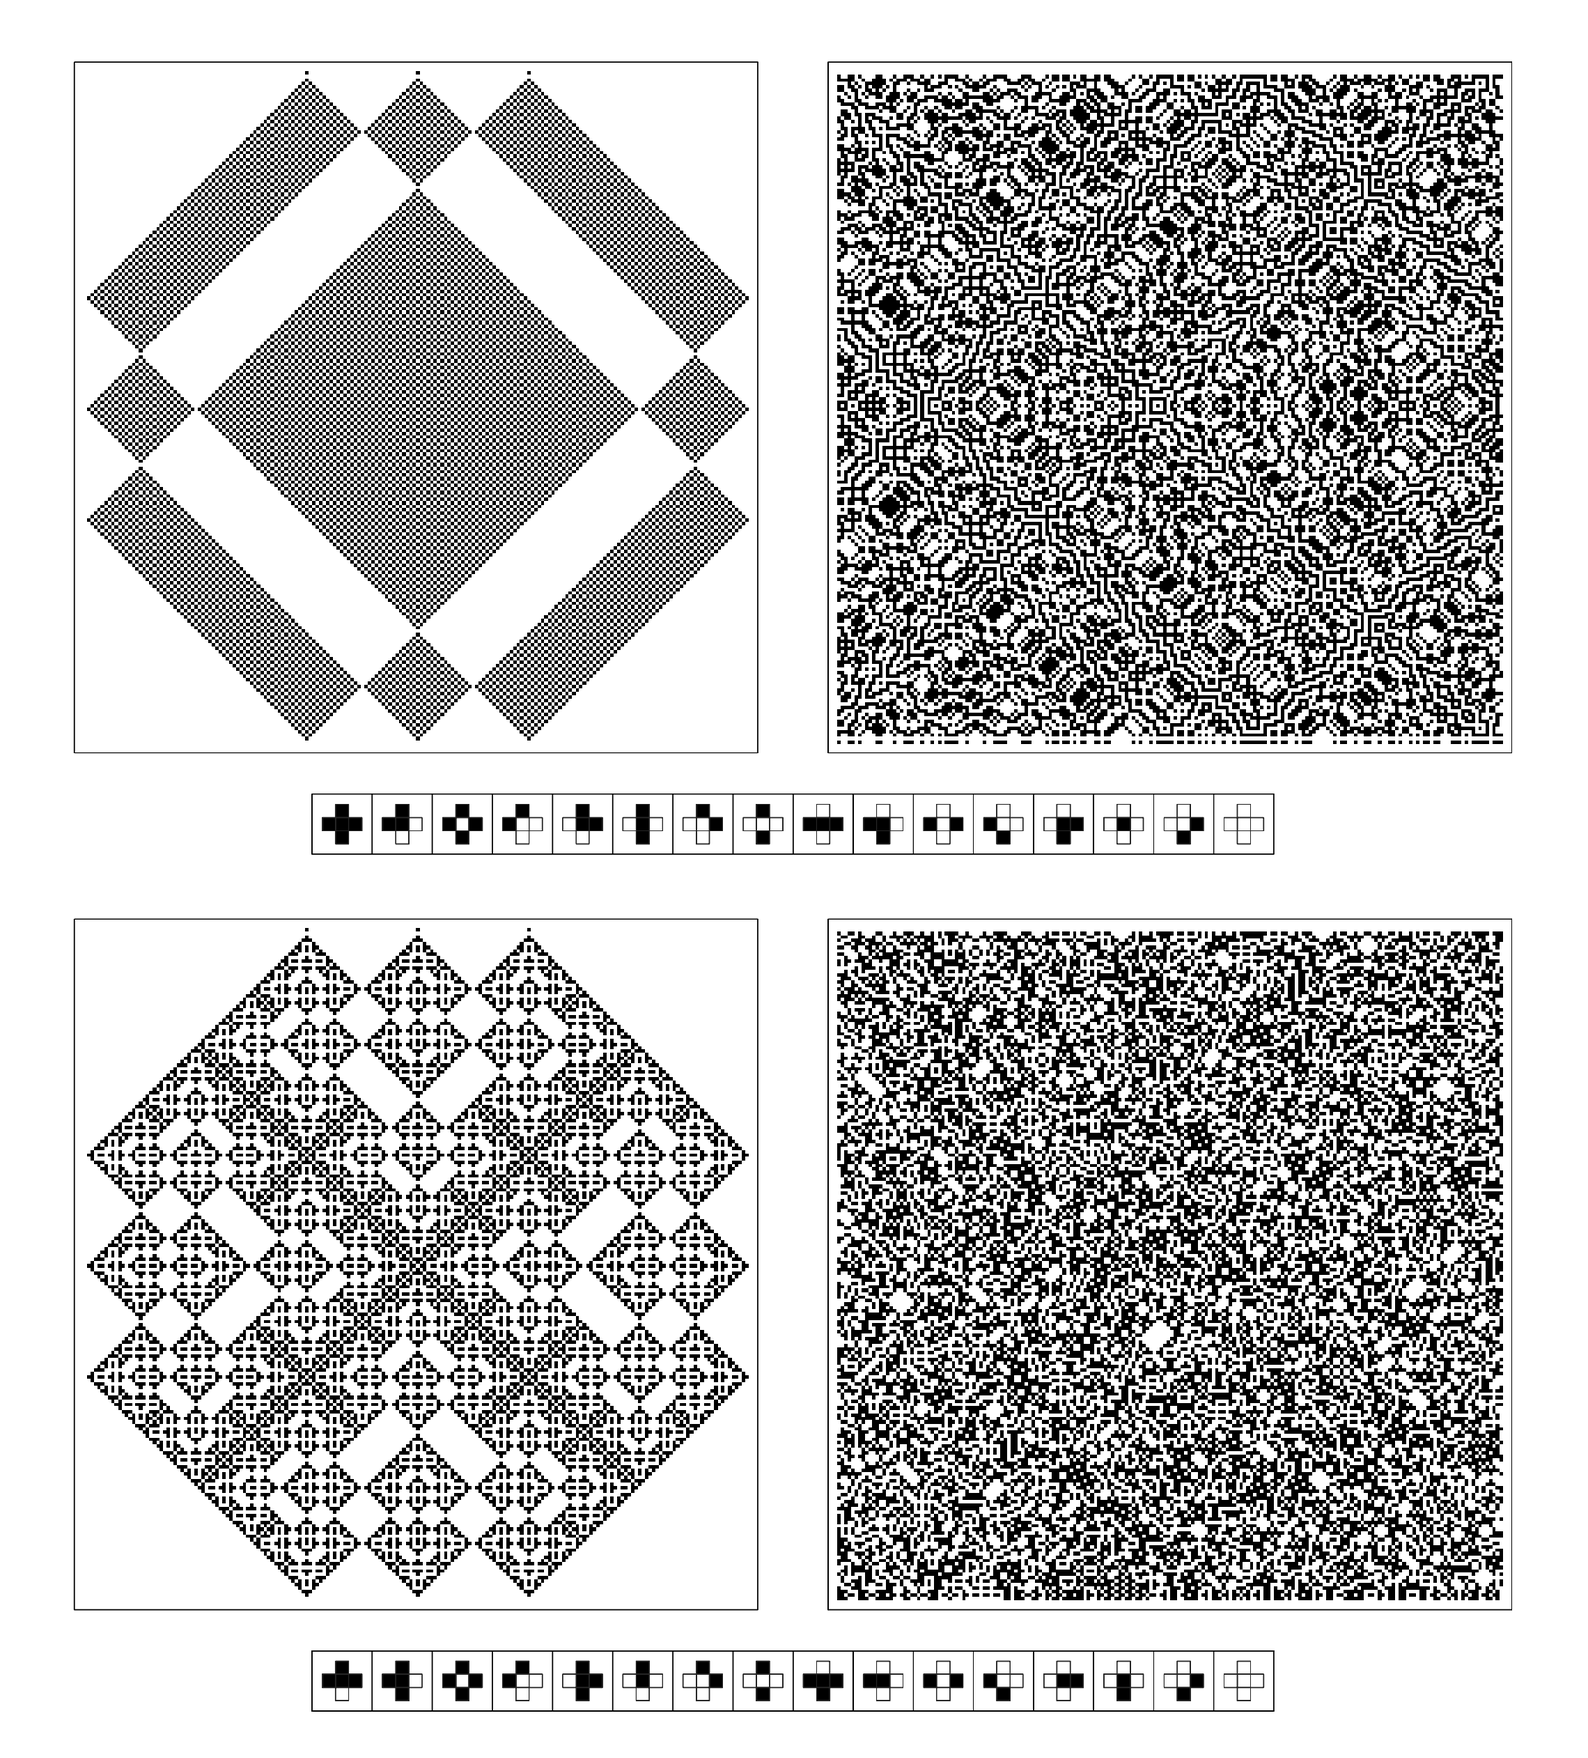 One-dimensional cellular automata with symmetry between space and time